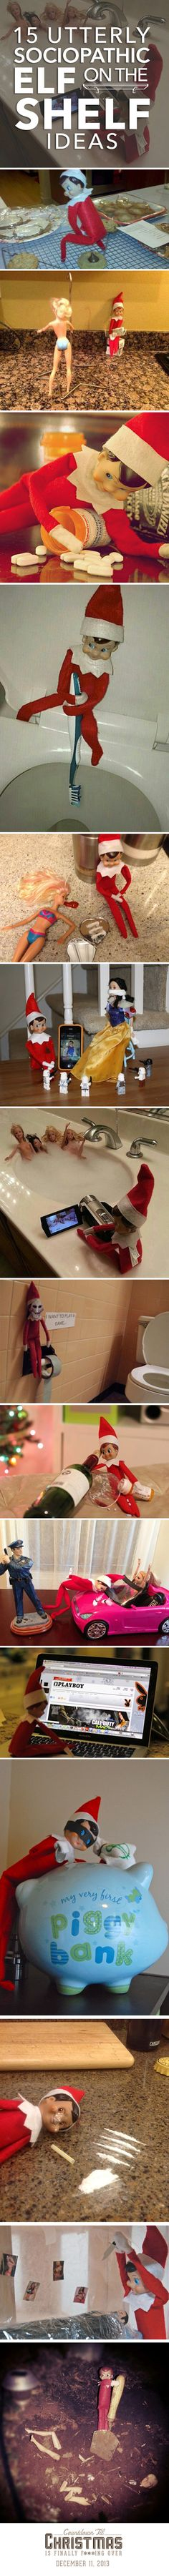 I think this elf thing is super creepy already but this is hilarious!